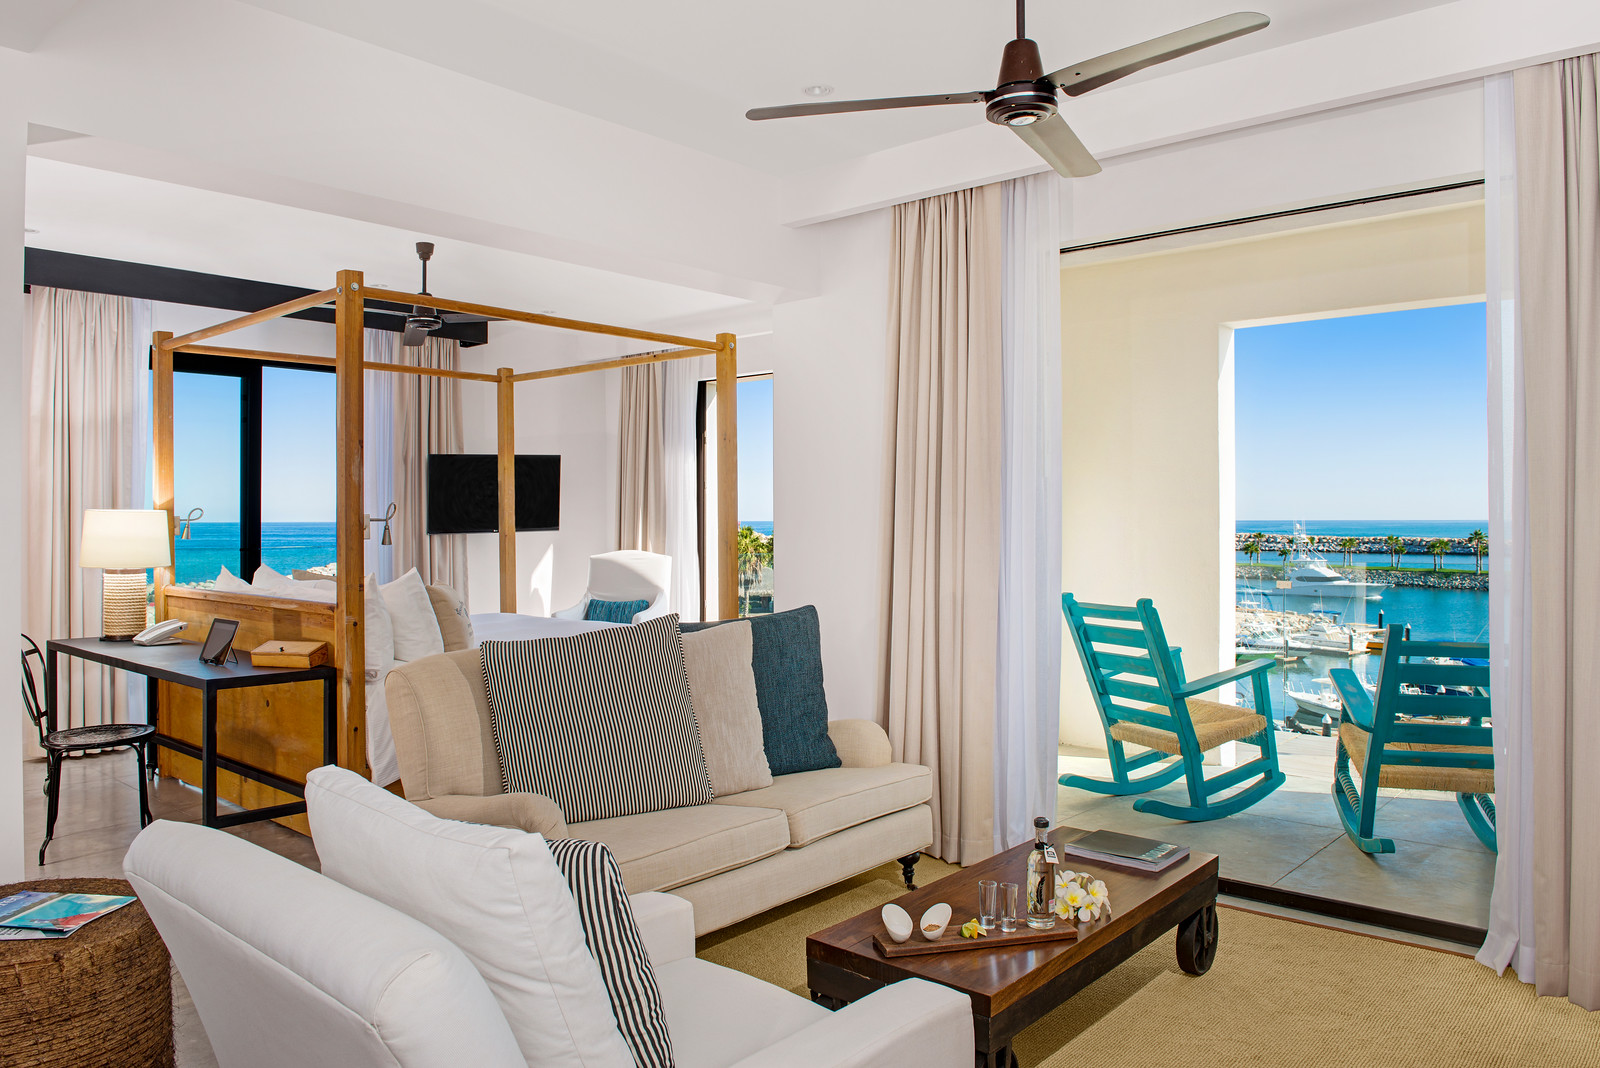 A Glimpse of One of the Master Suites at El Ganzo! Photo Courtesy of Hotel El Ganzo.